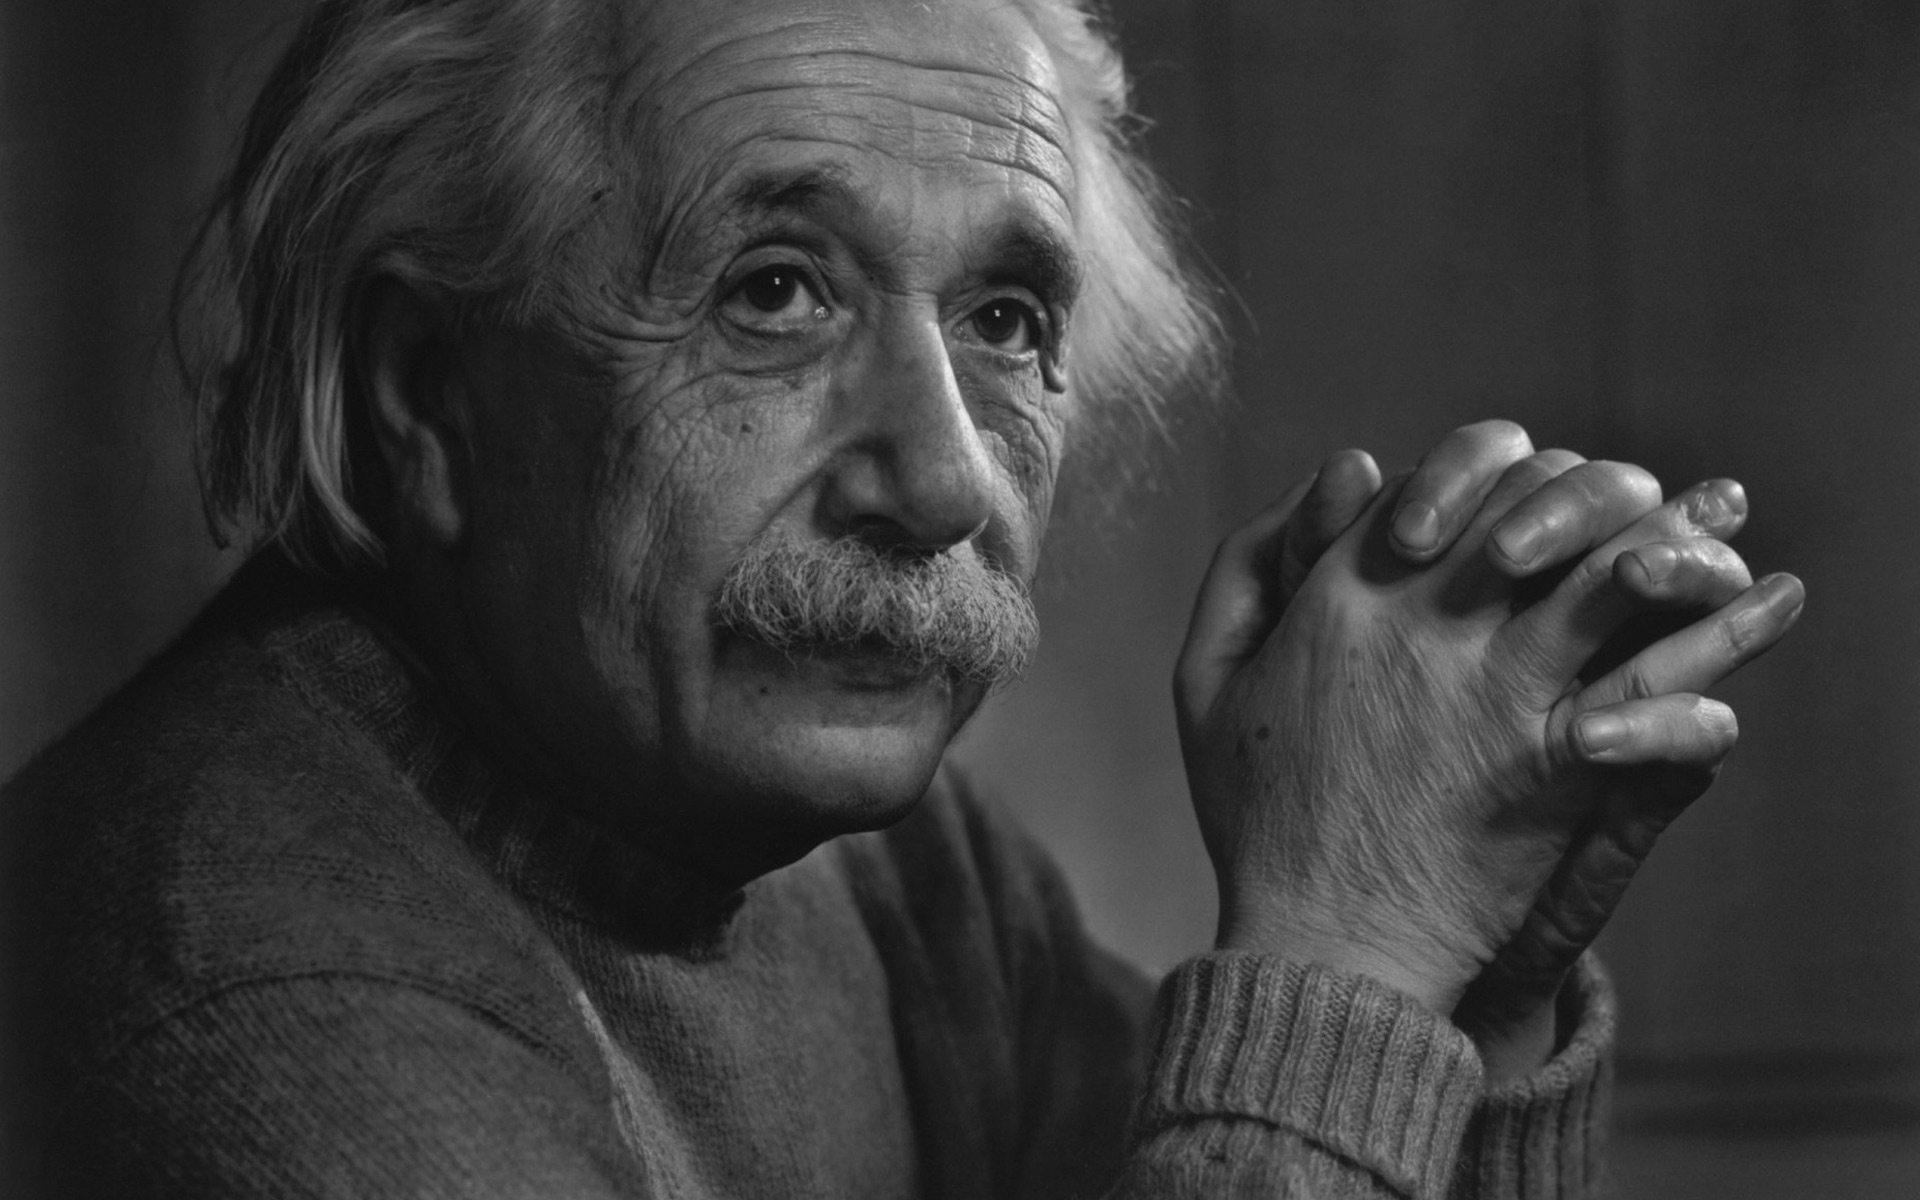 5 albert einstein fonds d'écran hd | arrière-plans - wallpaper abyss